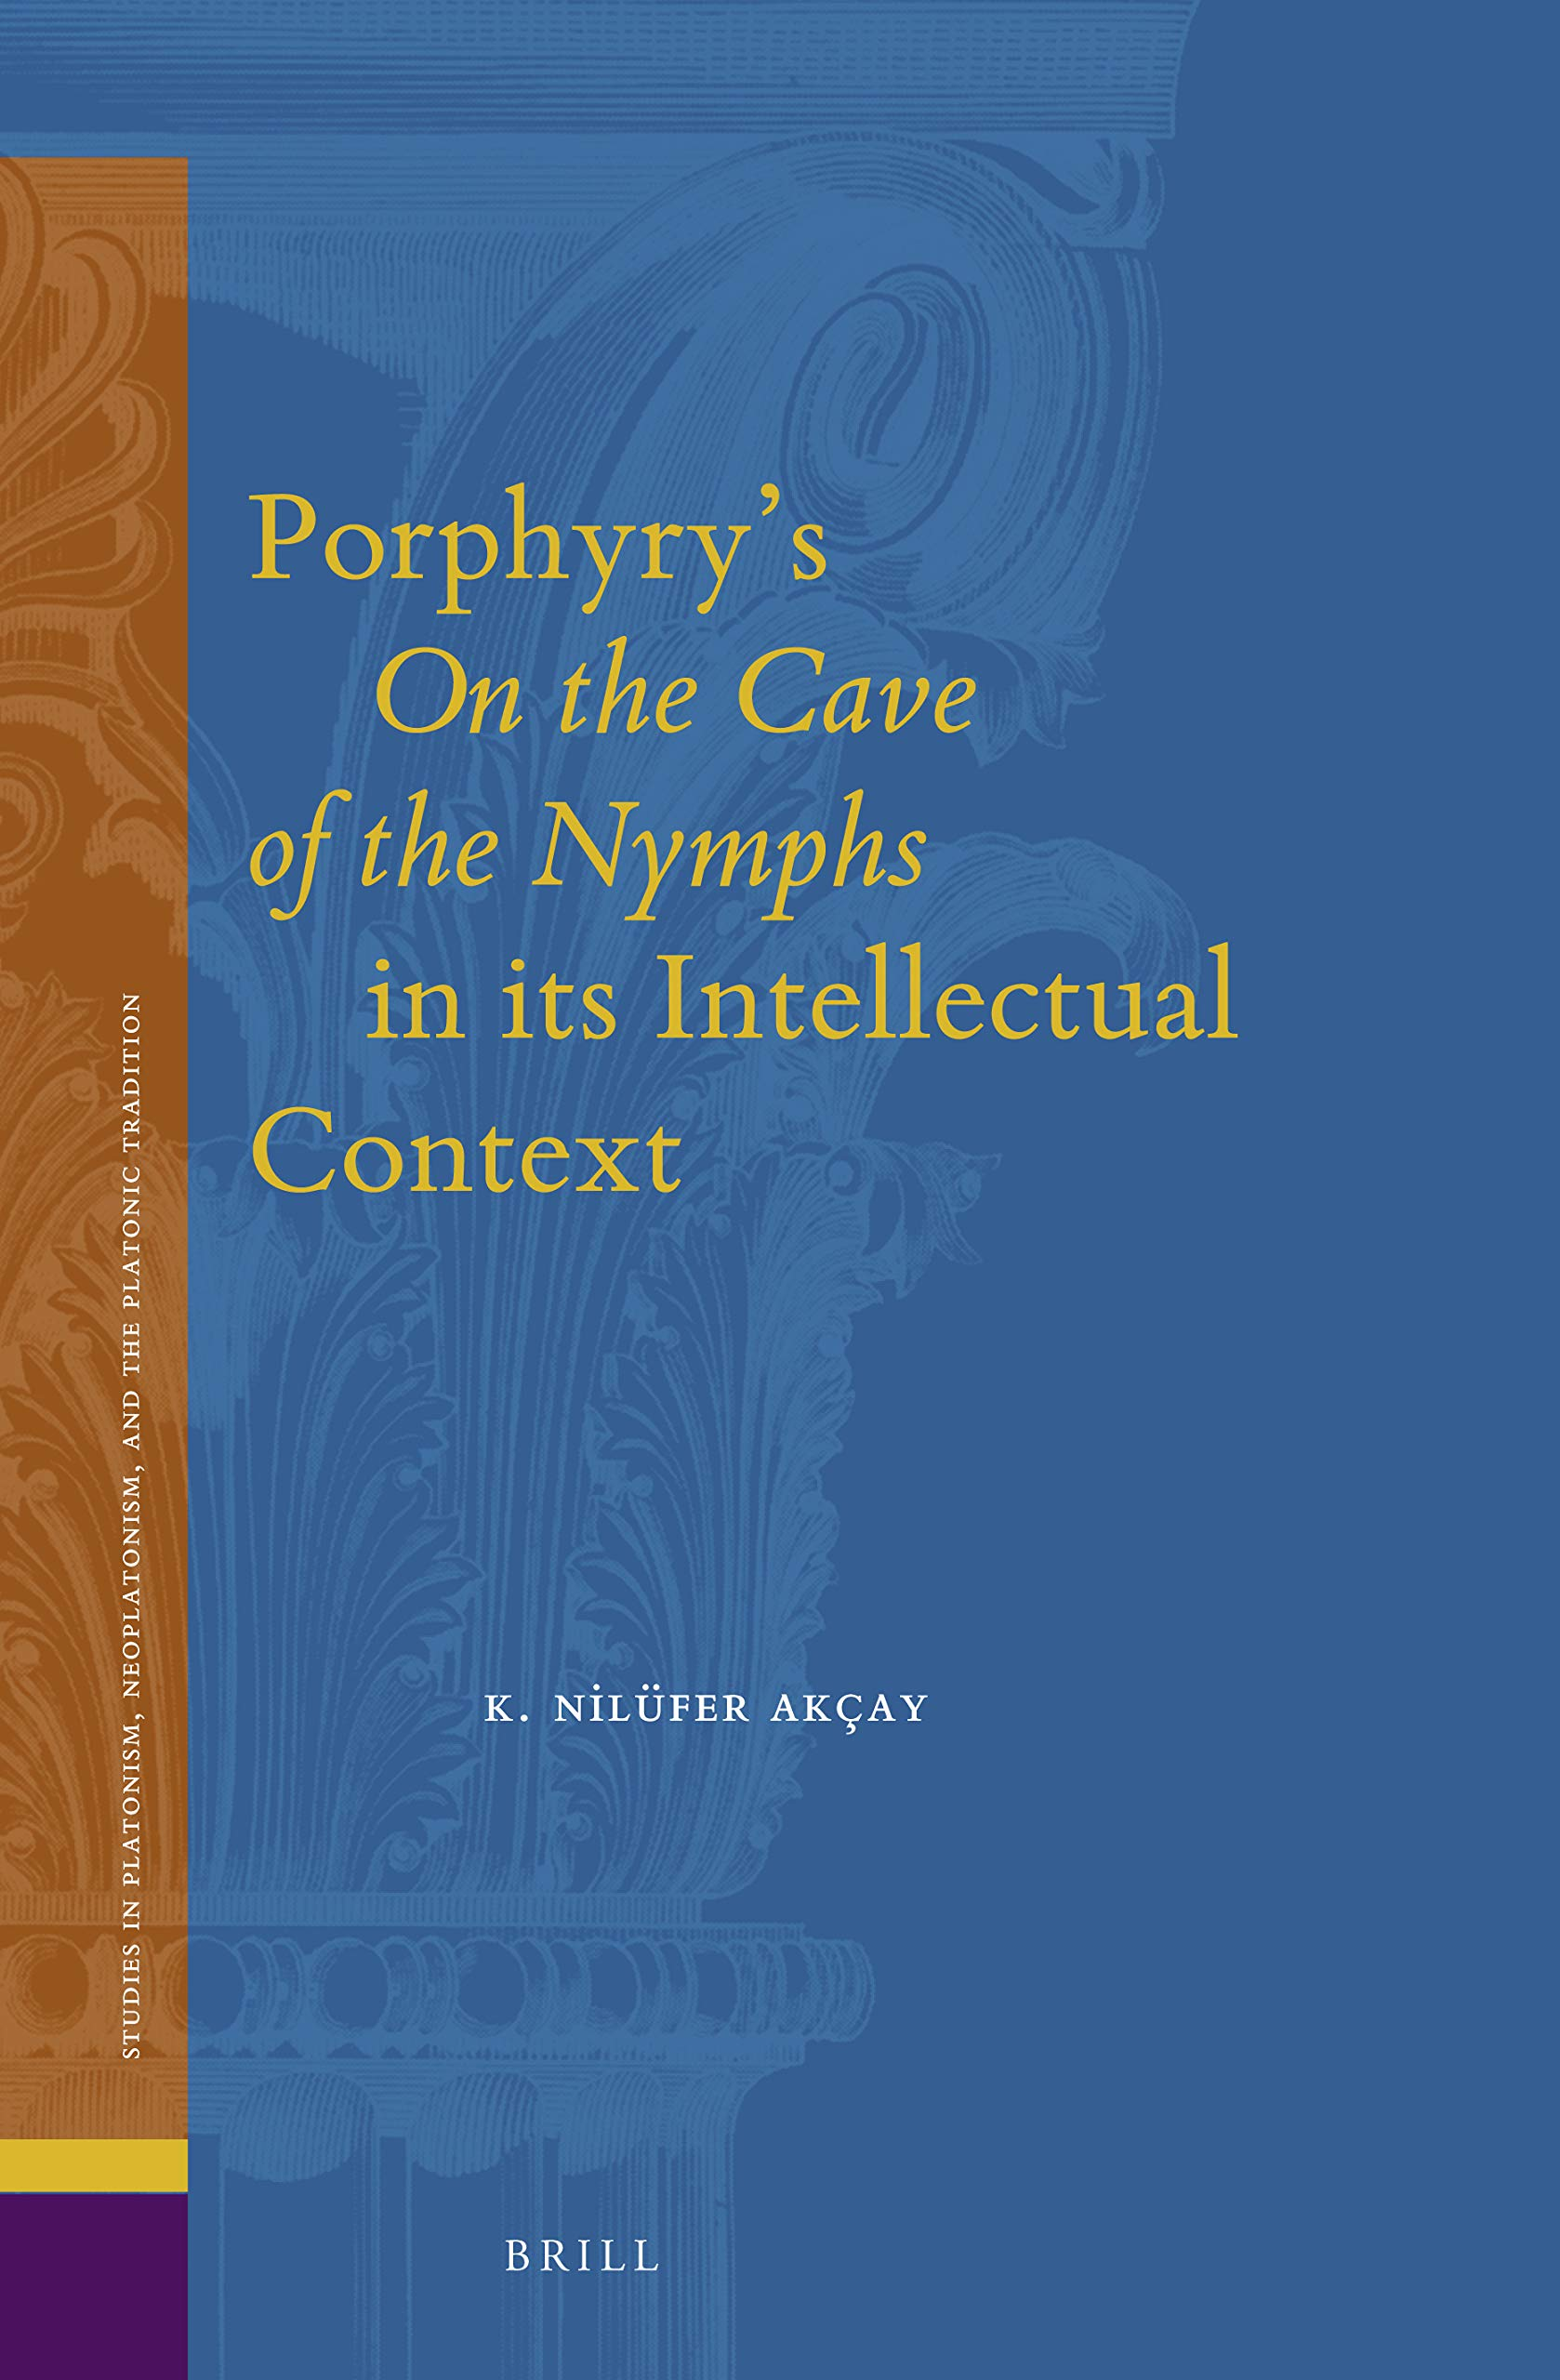 Porphyry's on the Cave of the Nymphs in Its Intellectual Context (Studies in Platonism, Neoplatonism, and the Platonic Tradition) by Brill Academic Pub